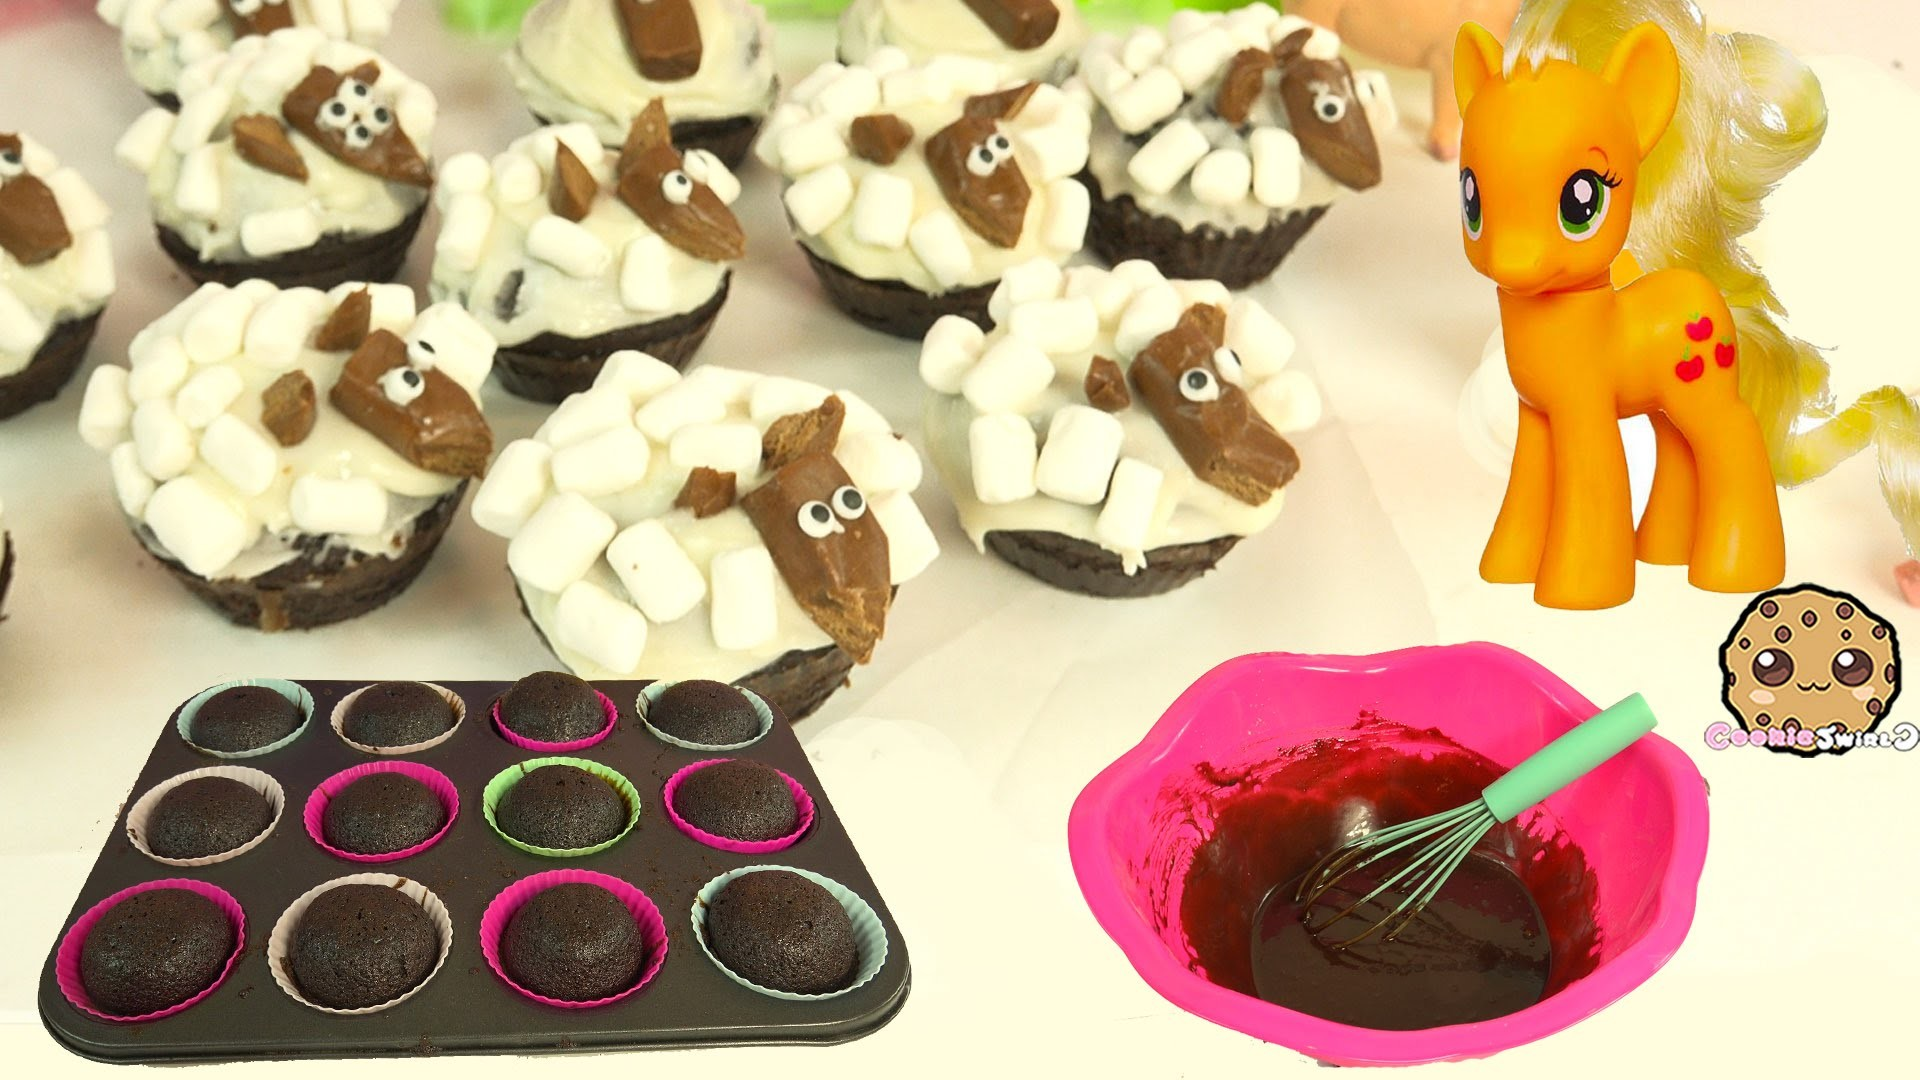 Baking Chocolate & Marshmallow Lambs Cupcakes For My Little Pony AppleJack - Cookieswirlc